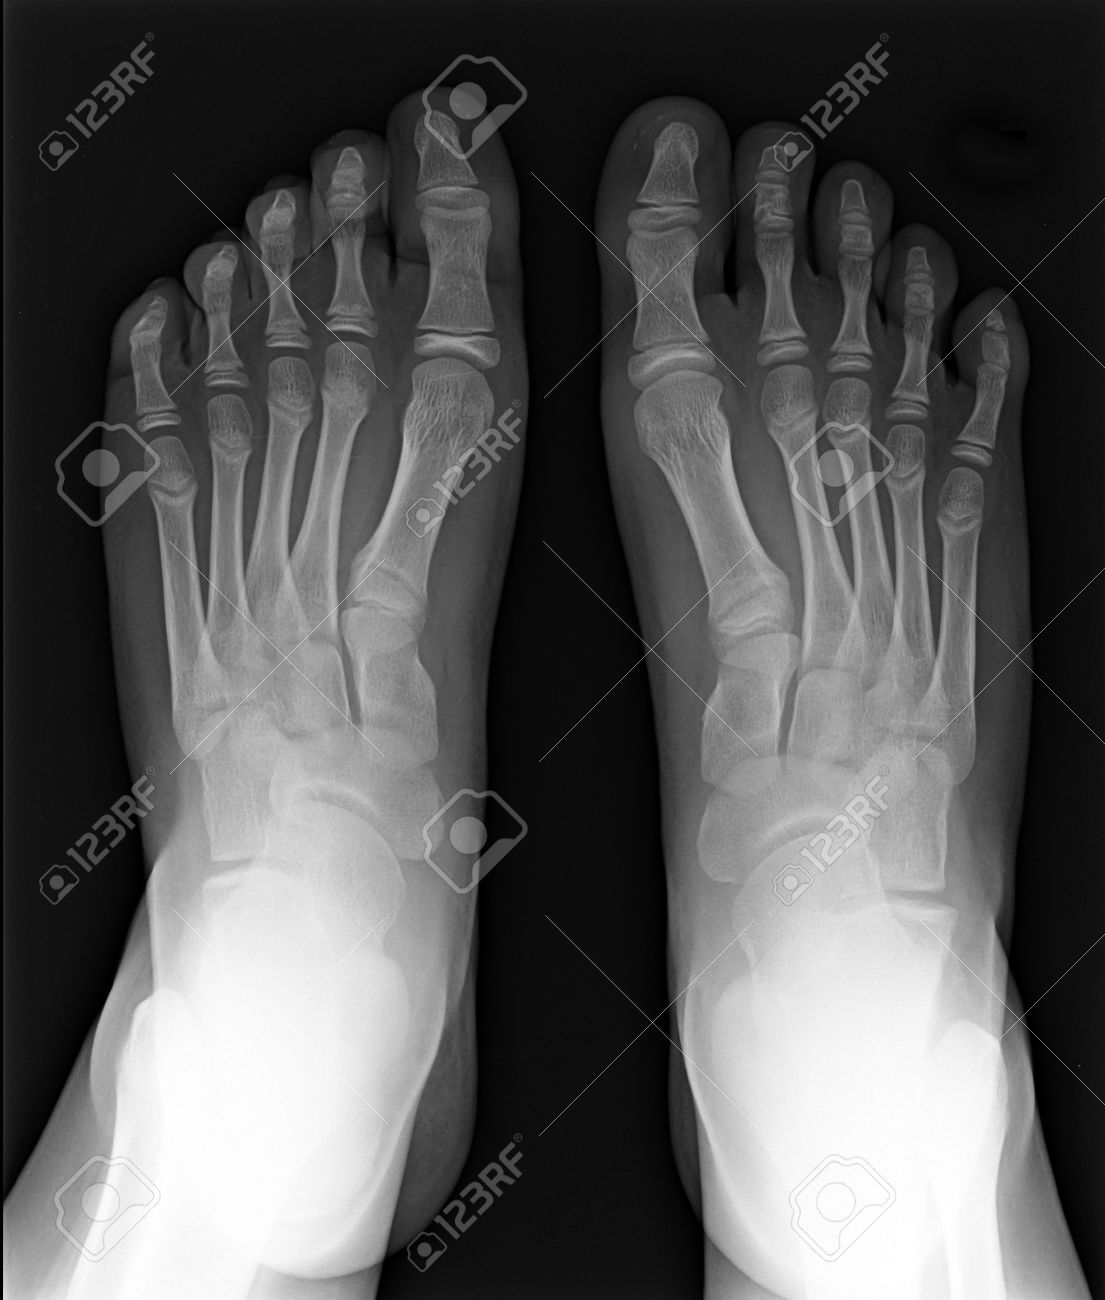 MRI Of Foot Fingers Exposed On X-ray Black And White Film Stock ...